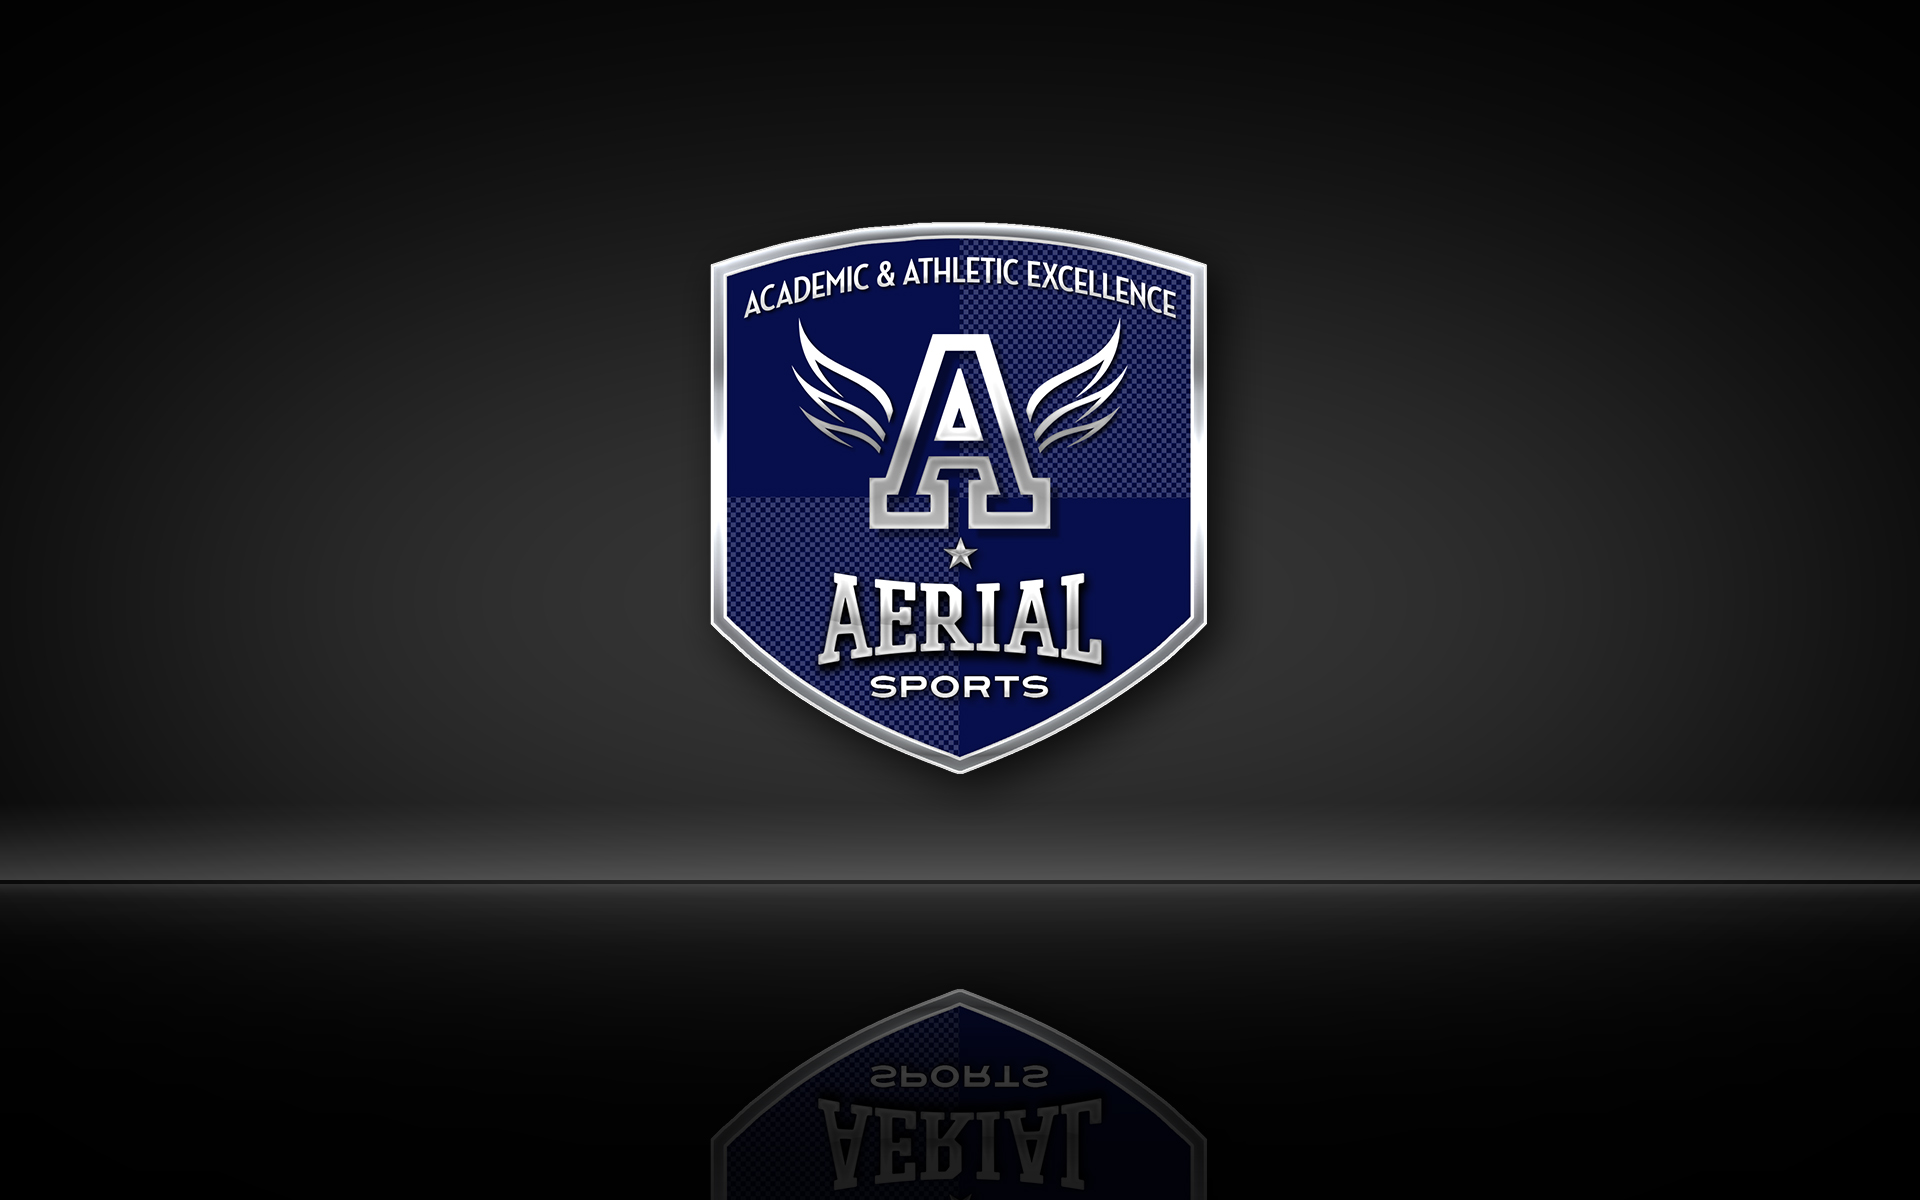 Aerial Sports Crest Collegiate Metal Navy Blue [v2] Credential Shield Logo by Graham Hnedak Brand G Creative 21 June 2019.jpg